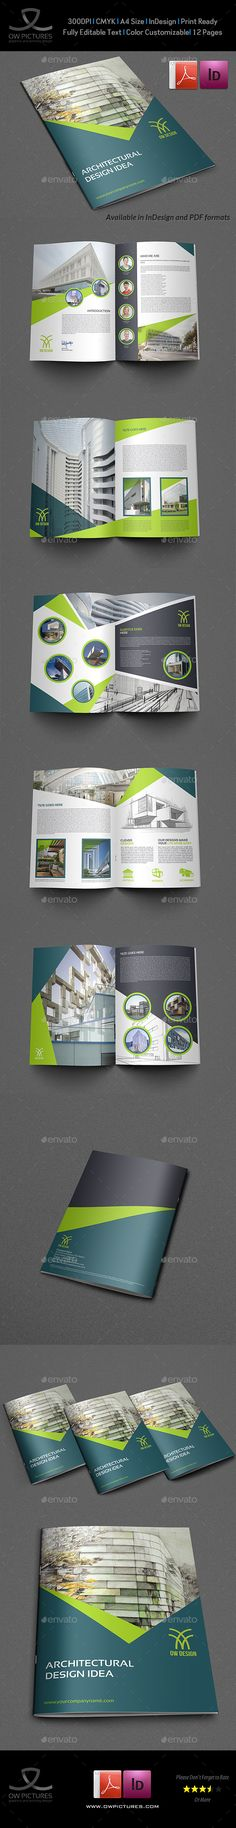 Co Landscape Brochure 22 Pages Brochures, Photoshop and Brochure - landscape brochure